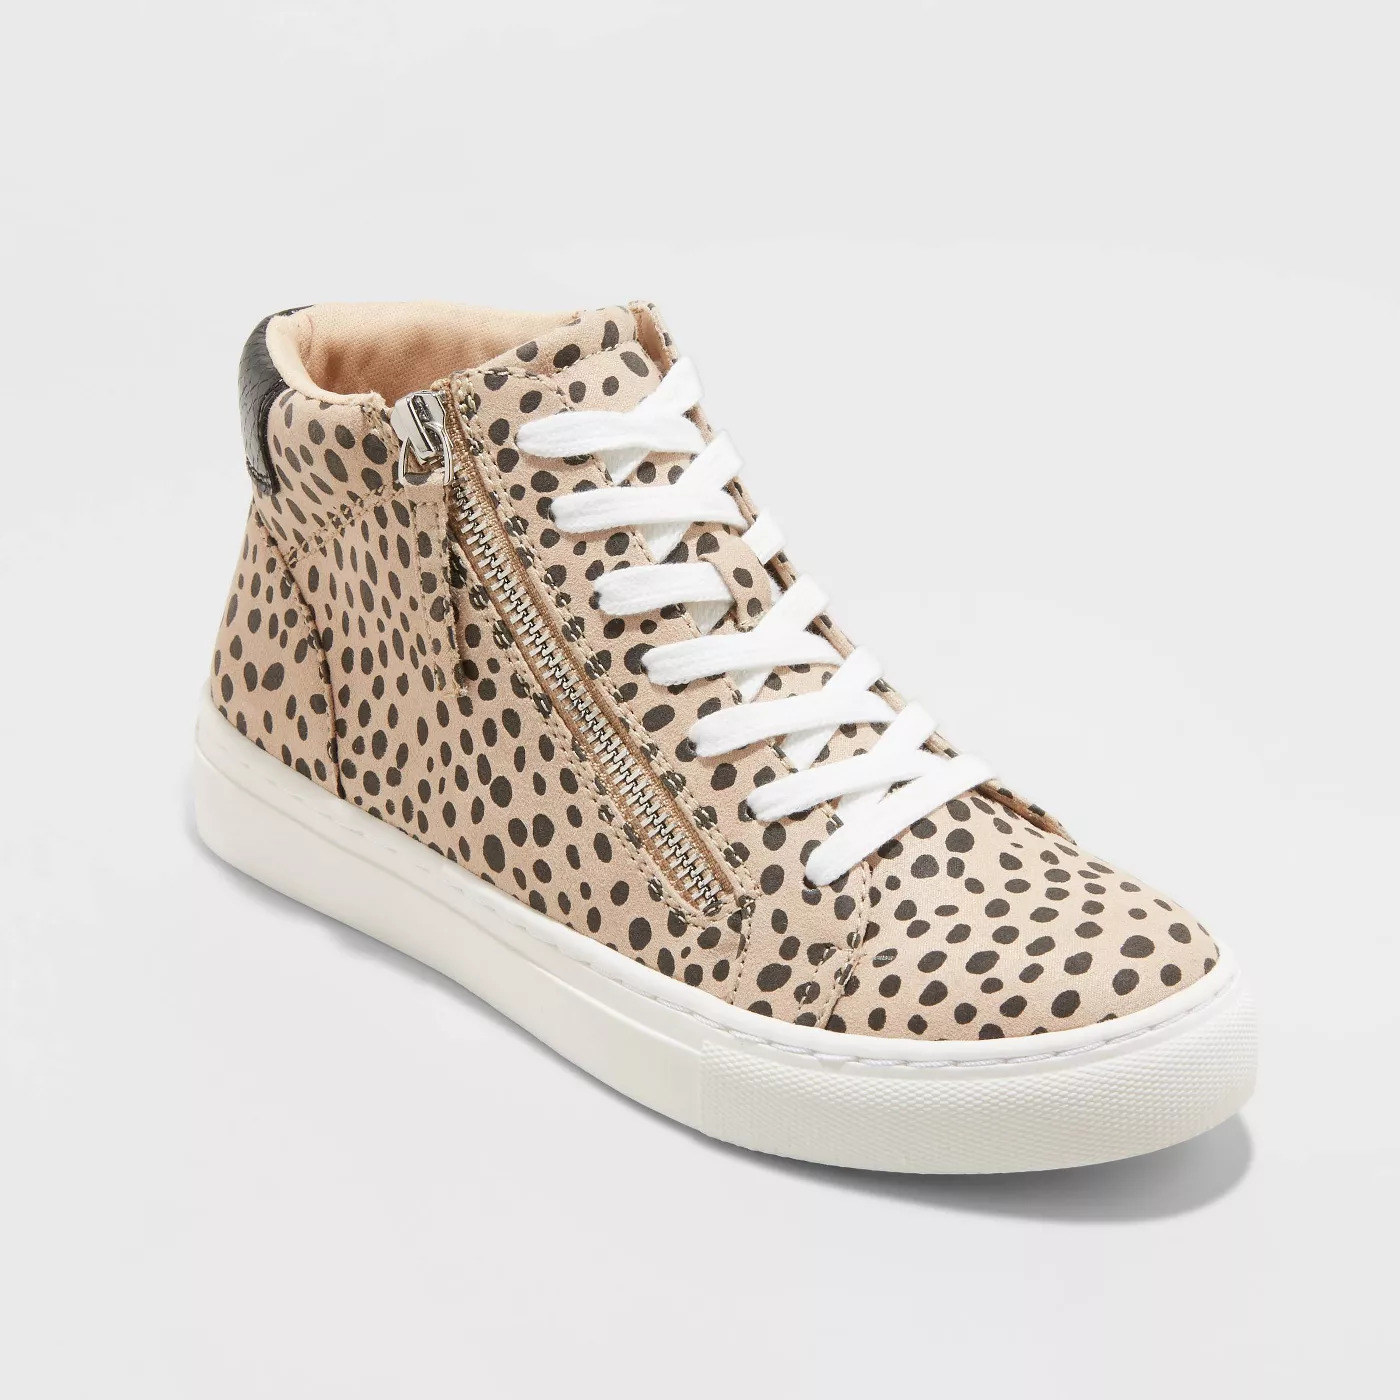 beige high top sneakers with black spots, white laces, and a zipper